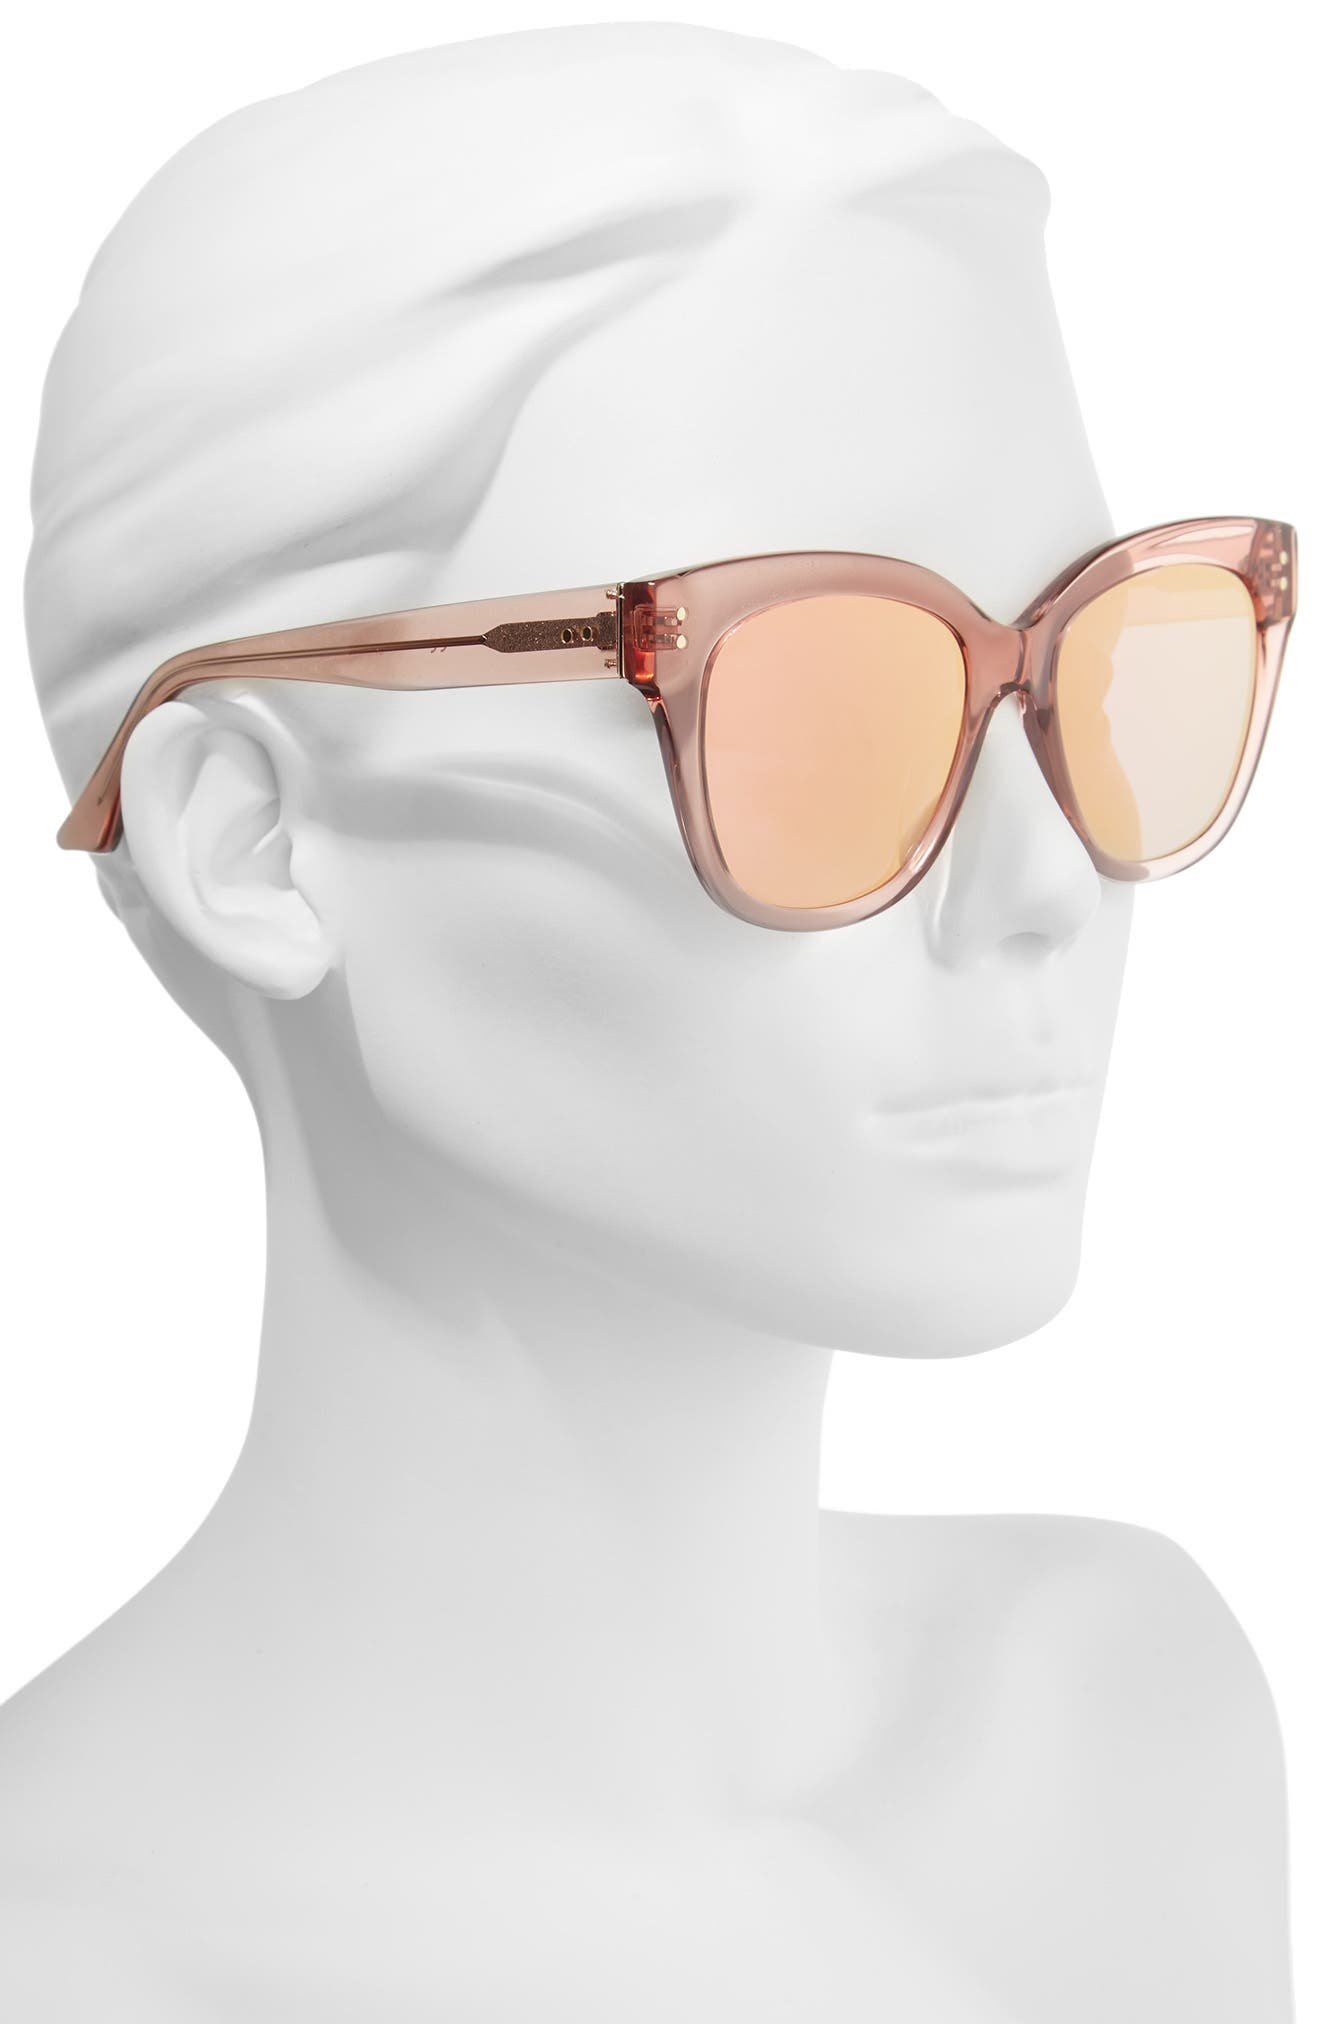 See Saw 55mm Cat Eye Sunglasses,                             Alternate thumbnail 2, color,                             ROSE- GOLD